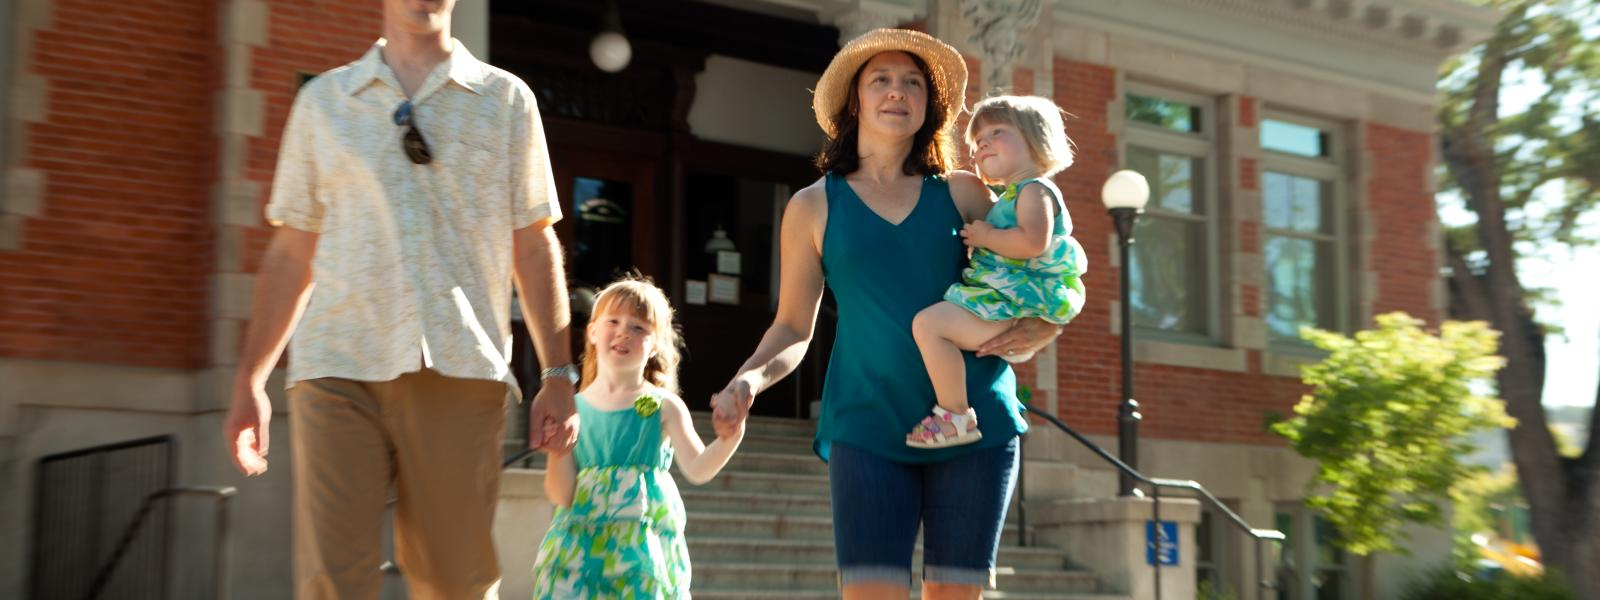 familiy walking, carnegie library_TravelPaso.com credit